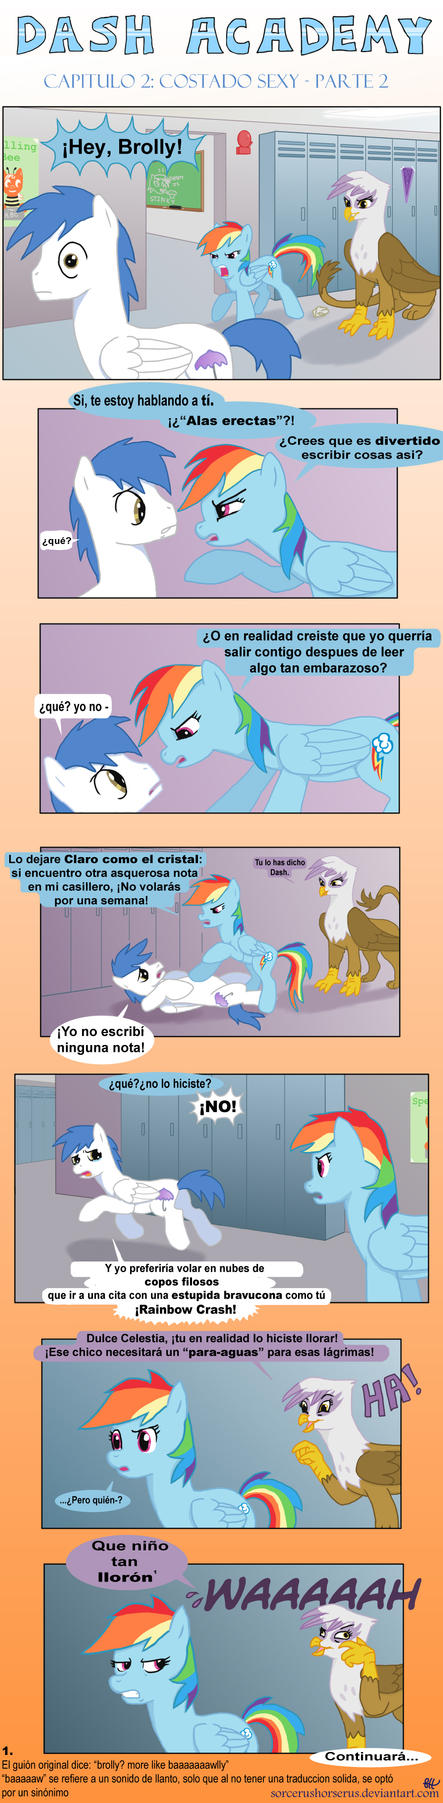 Dash Academy - Hot Flank part. 2 by palafox129